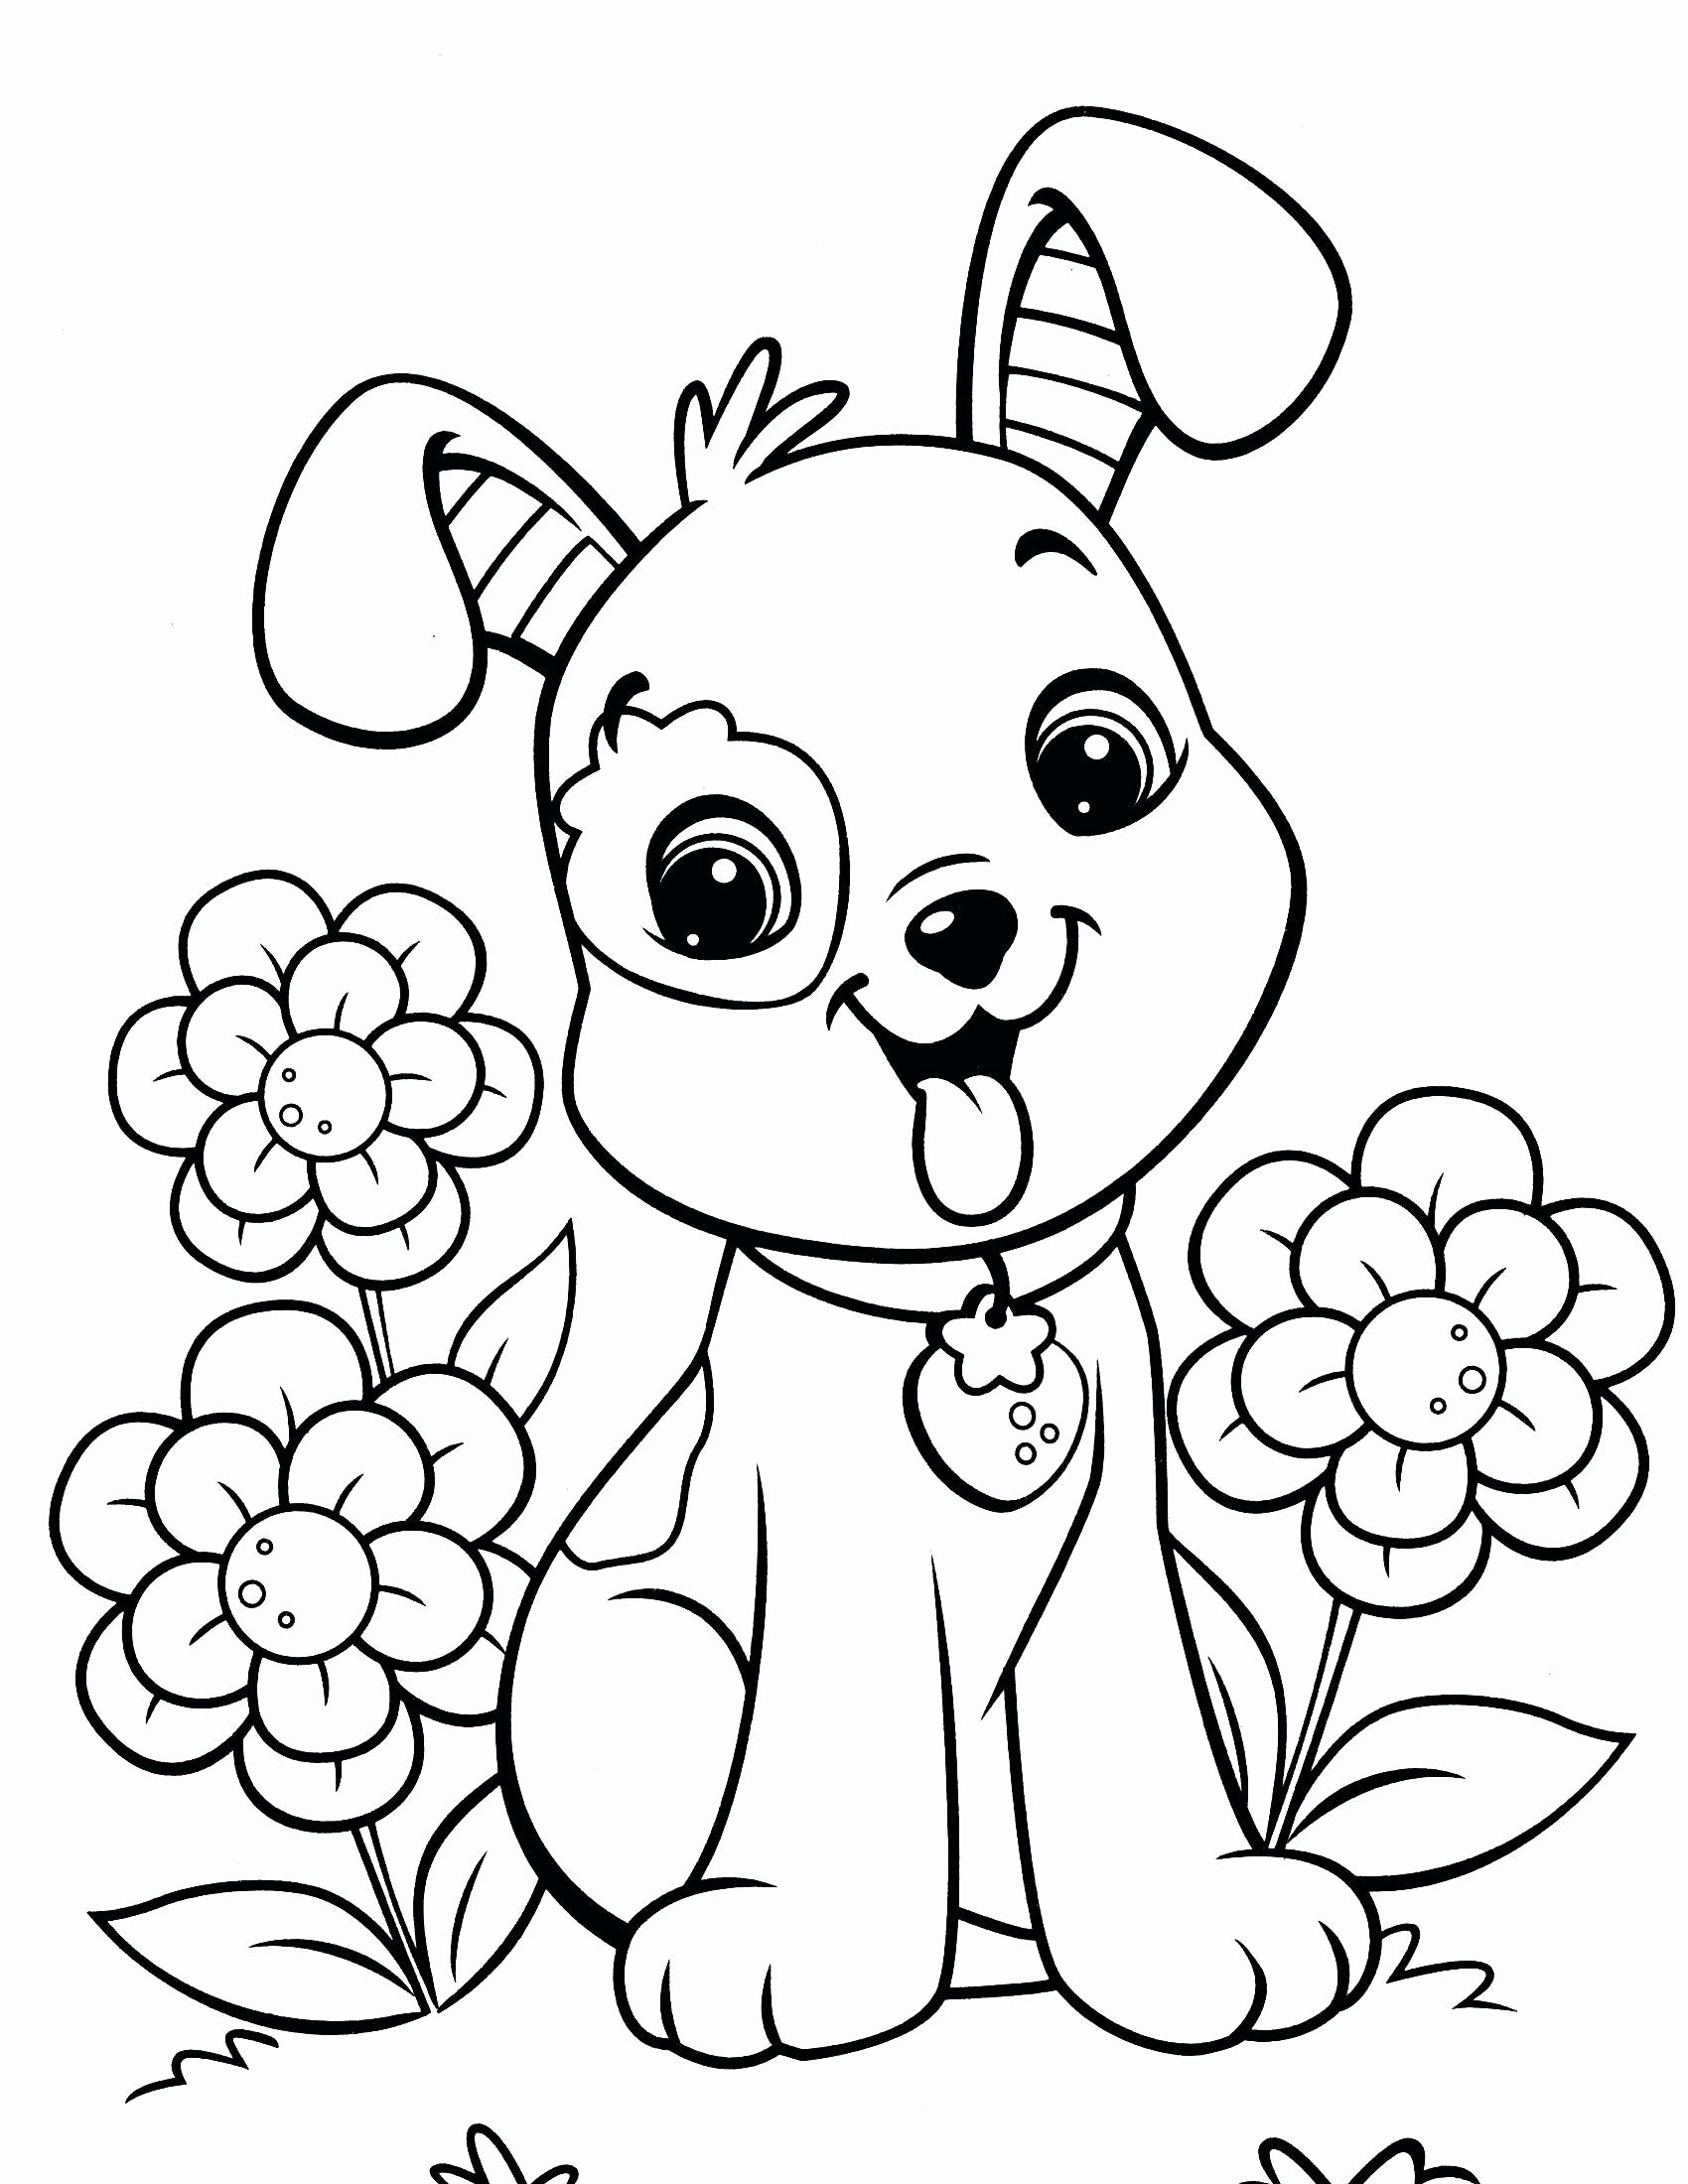 Flower Coloring Pages Of Animals For Kids Puppy Coloring Pages Cool Coloring Pages Animal Coloring Pages